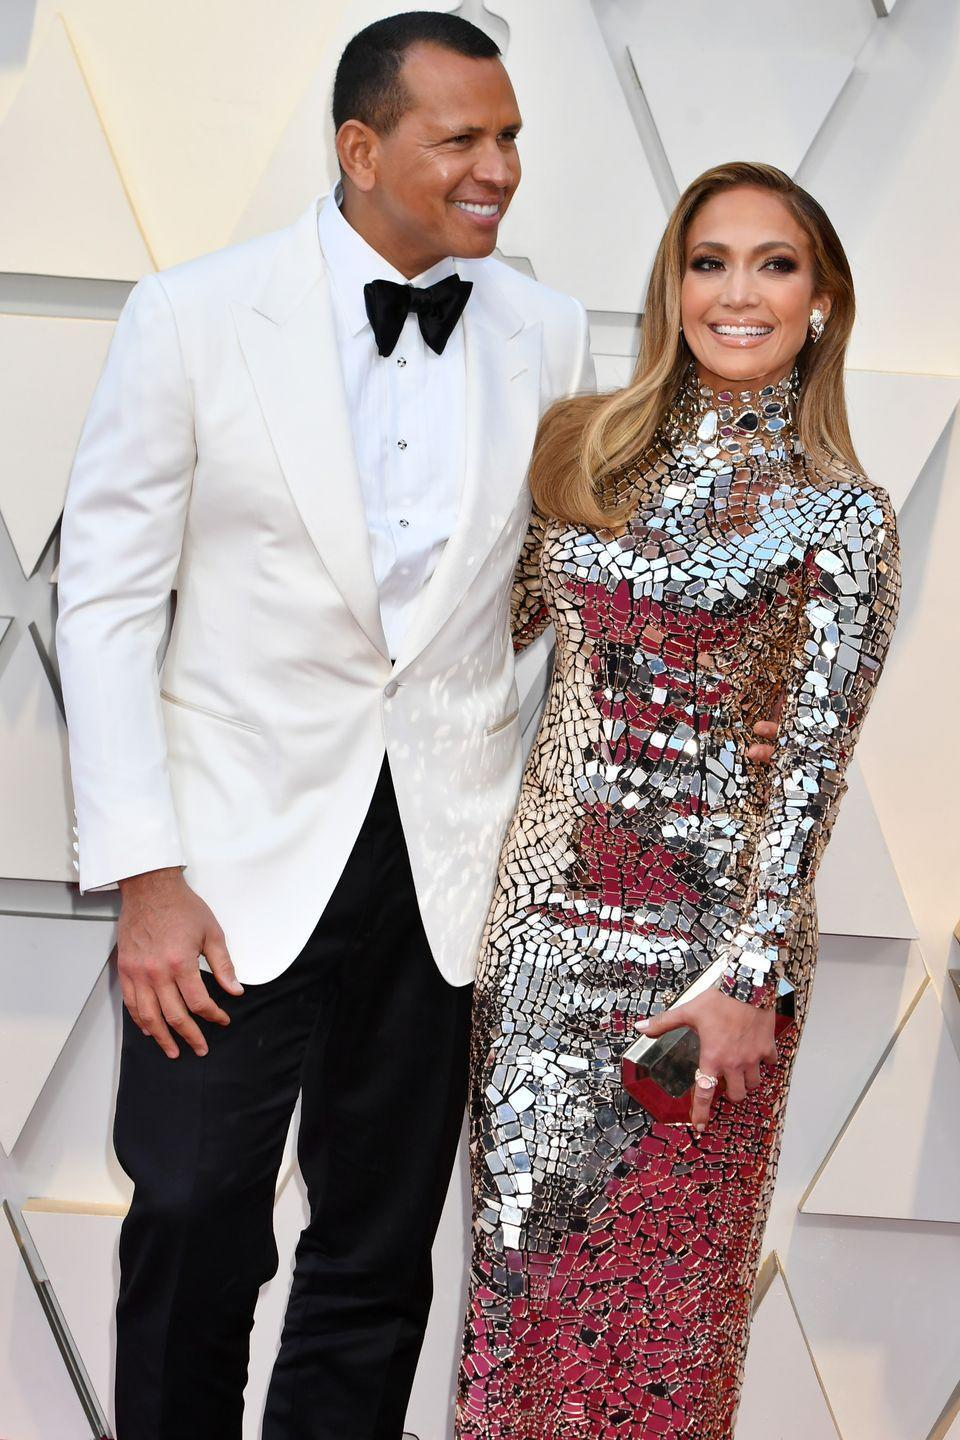 "<p>She's a triple-threat performer and he's a legendary former New York Yankee. The A-list couple started dating <a href=""https://www.harpersbazaar.com/celebrity/latest/a26775418/jennifer-lopez-alex-rodriguez-relationship-timeline-photos/"" rel=""nofollow noopener"" target=""_blank"" data-ylk=""slk:in 2017"" class=""link rapid-noclick-resp"">in 2017</a>, and seemed to be a perfect match. In 2018, Lopez opened up to <em><a href=""https://www.harpersbazaar.com/culture/features/a19181340/jennifer-lopez-interview-2018/"" rel=""nofollow noopener"" target=""_blank"" data-ylk=""slk:Harper's BAZAAR"" class=""link rapid-noclick-resp"">Harper's BAZAAR</a></em> about their relationship: ""We understand each other's lives in a way that most other people couldn't. We both entered the public eye in our early 20s and overachieved right from the start. And that affects every dynamic in your life, from your family to your work to your relationships. We have a similar makeup.""</p><p>In March 2019, A-Rod <a href=""https://www.harpersbazaar.com/celebrity/latest/a26773192/jennifer-lopez-alex-rodriguez-engaged/"" rel=""nofollow noopener"" target=""_blank"" data-ylk=""slk:proposed"" class=""link rapid-noclick-resp"">proposed</a> with a massive diamond ring during a romantic vacation, sharing the sweet moment <a href=""https://www.instagram.com/p/Buzz2J8ADNB/?utm_source=ig_embed"" rel=""nofollow noopener"" target=""_blank"" data-ylk=""slk:on Instagram"" class=""link rapid-noclick-resp"">on Instagram</a>.</p>"